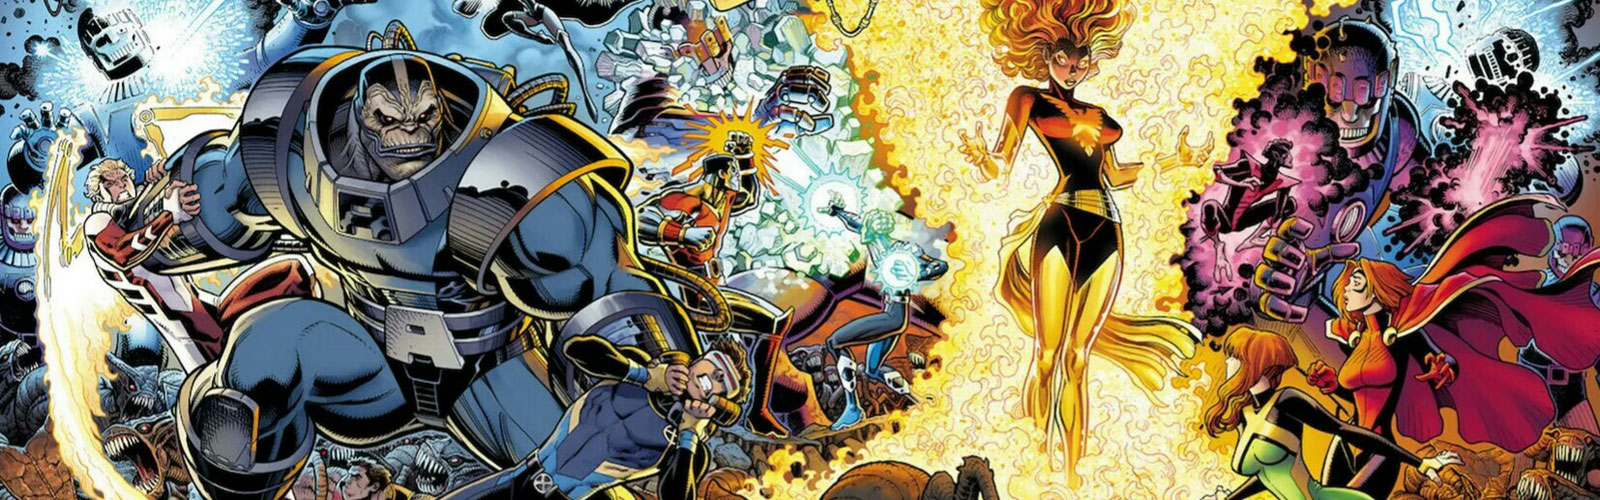 X-Men: Gold / X-Men: Blue